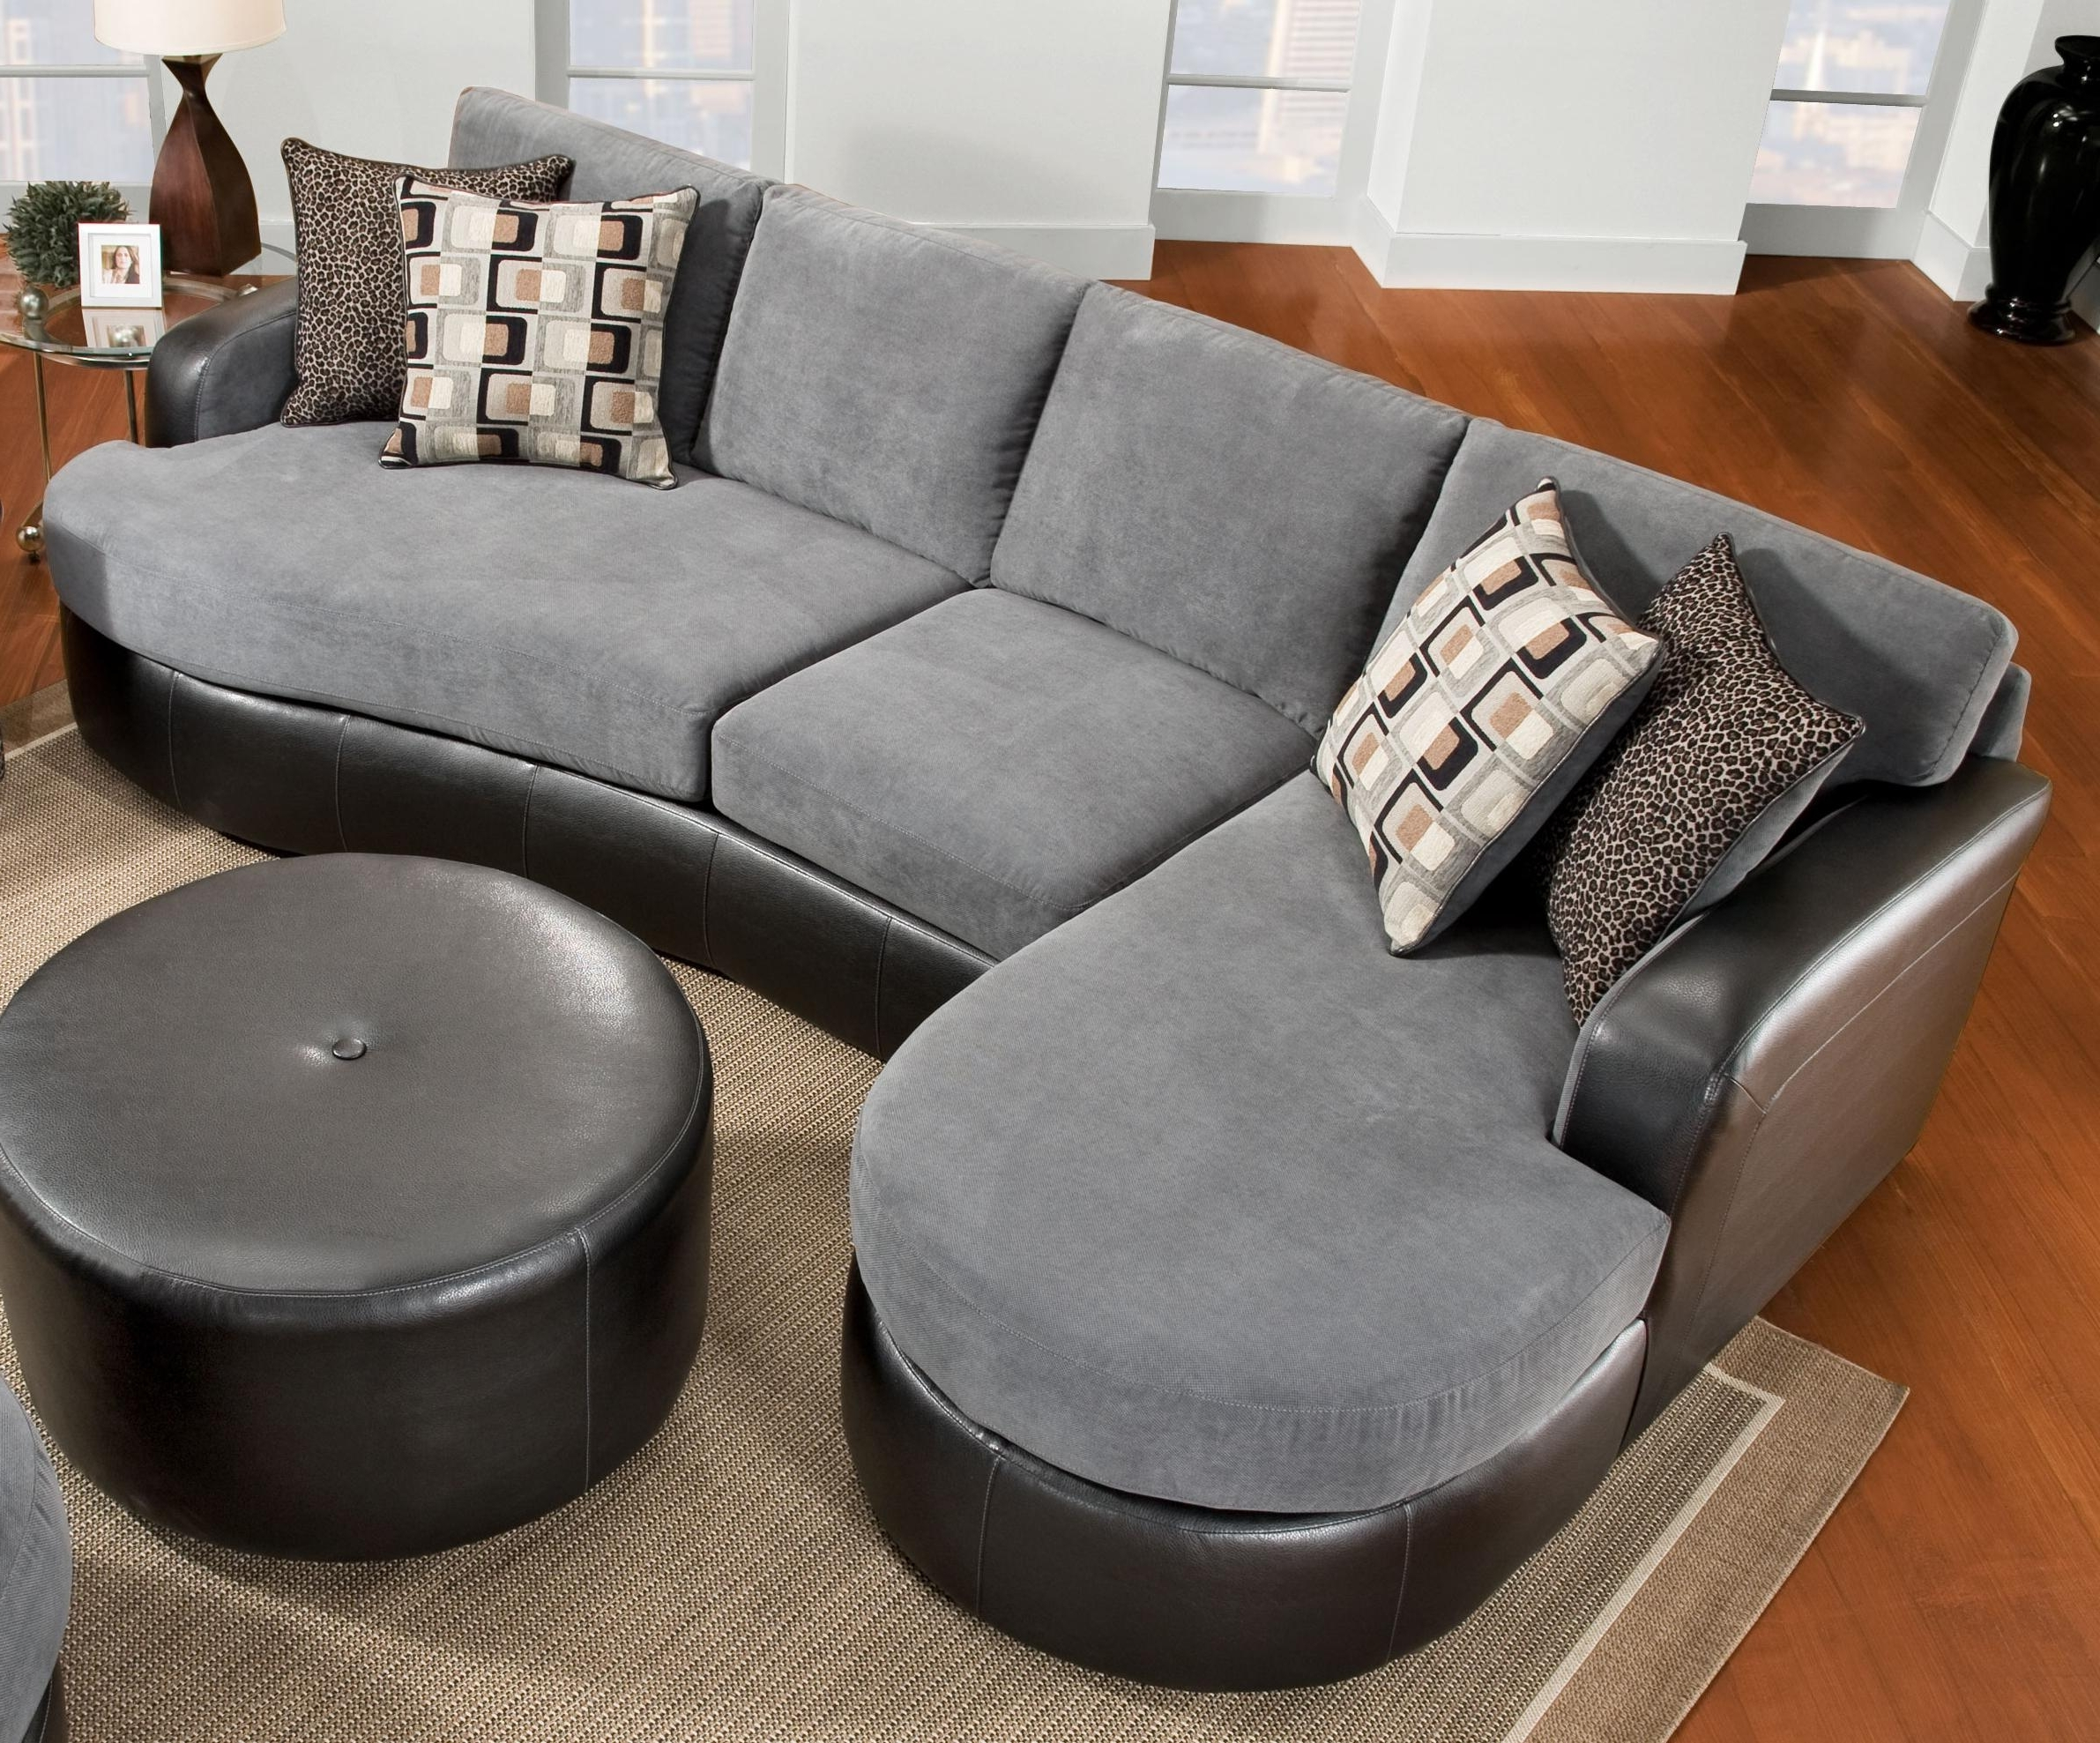 2018 Home Design : Dazzling Best Modern Fabric Sectional Sofas With Throughout Leather Sectionals With Chaise And Ottoman (View 1 of 15)